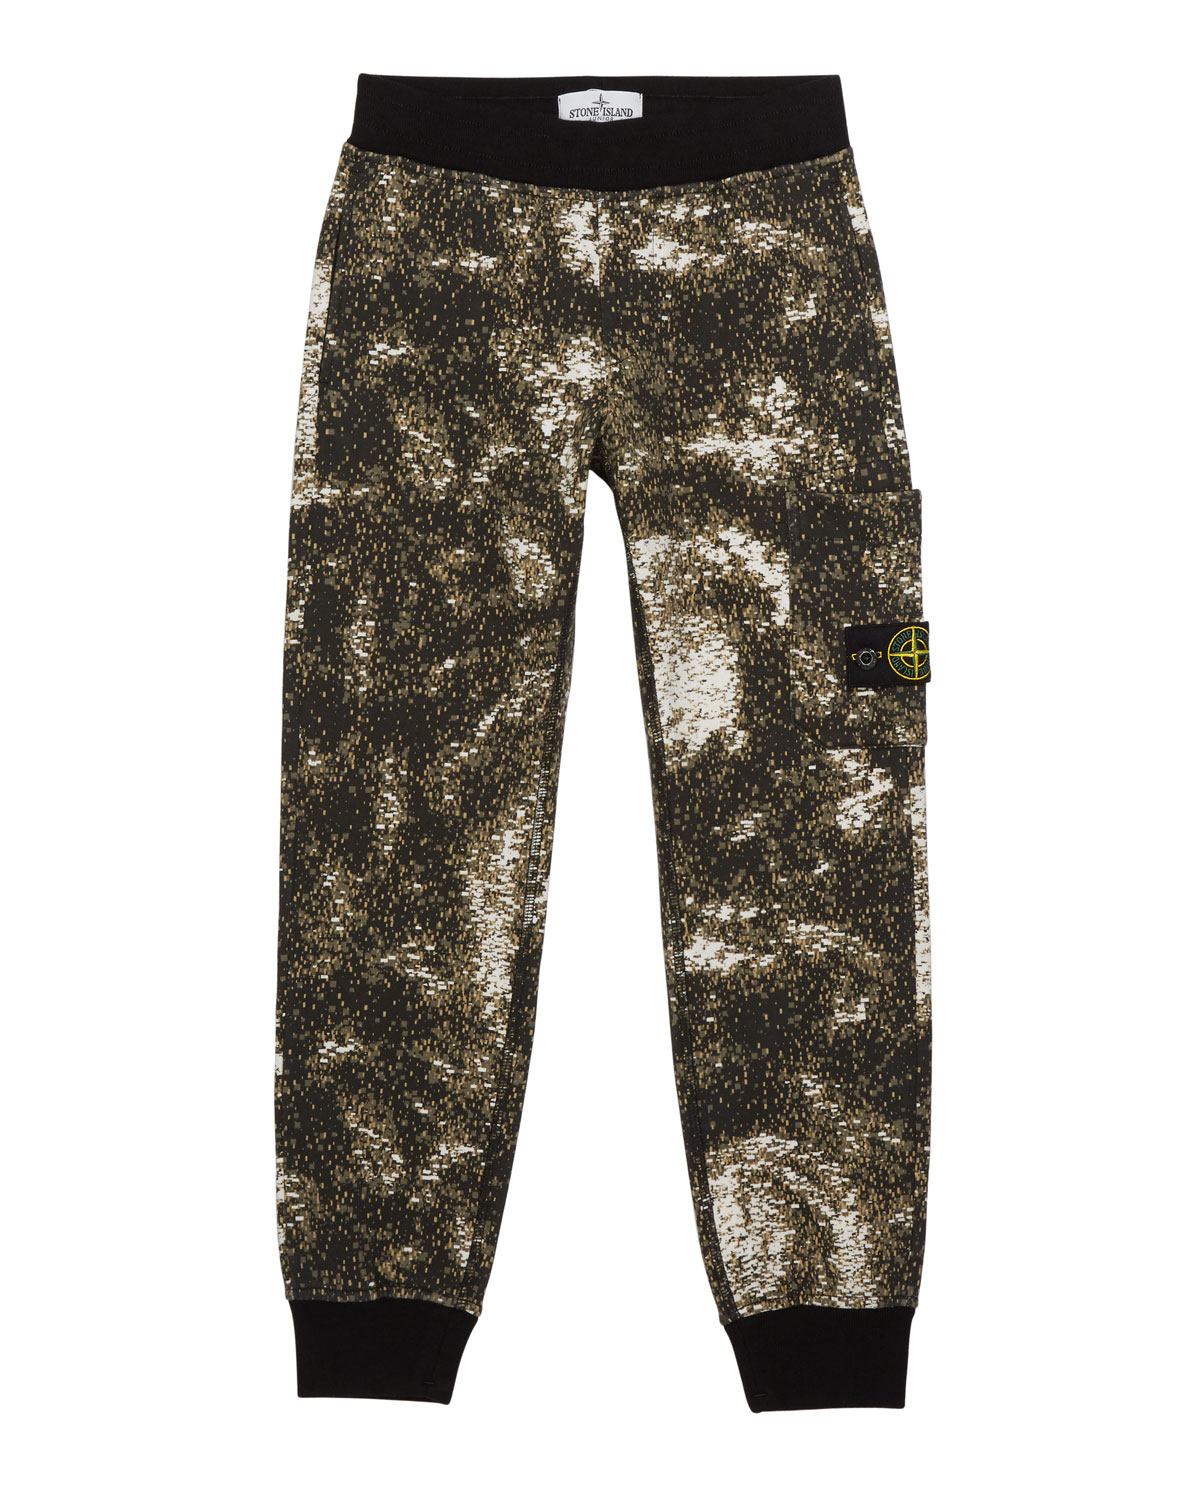 Stone Island Boy's Digital Space Print Fleece Jogger Pants, Size 12